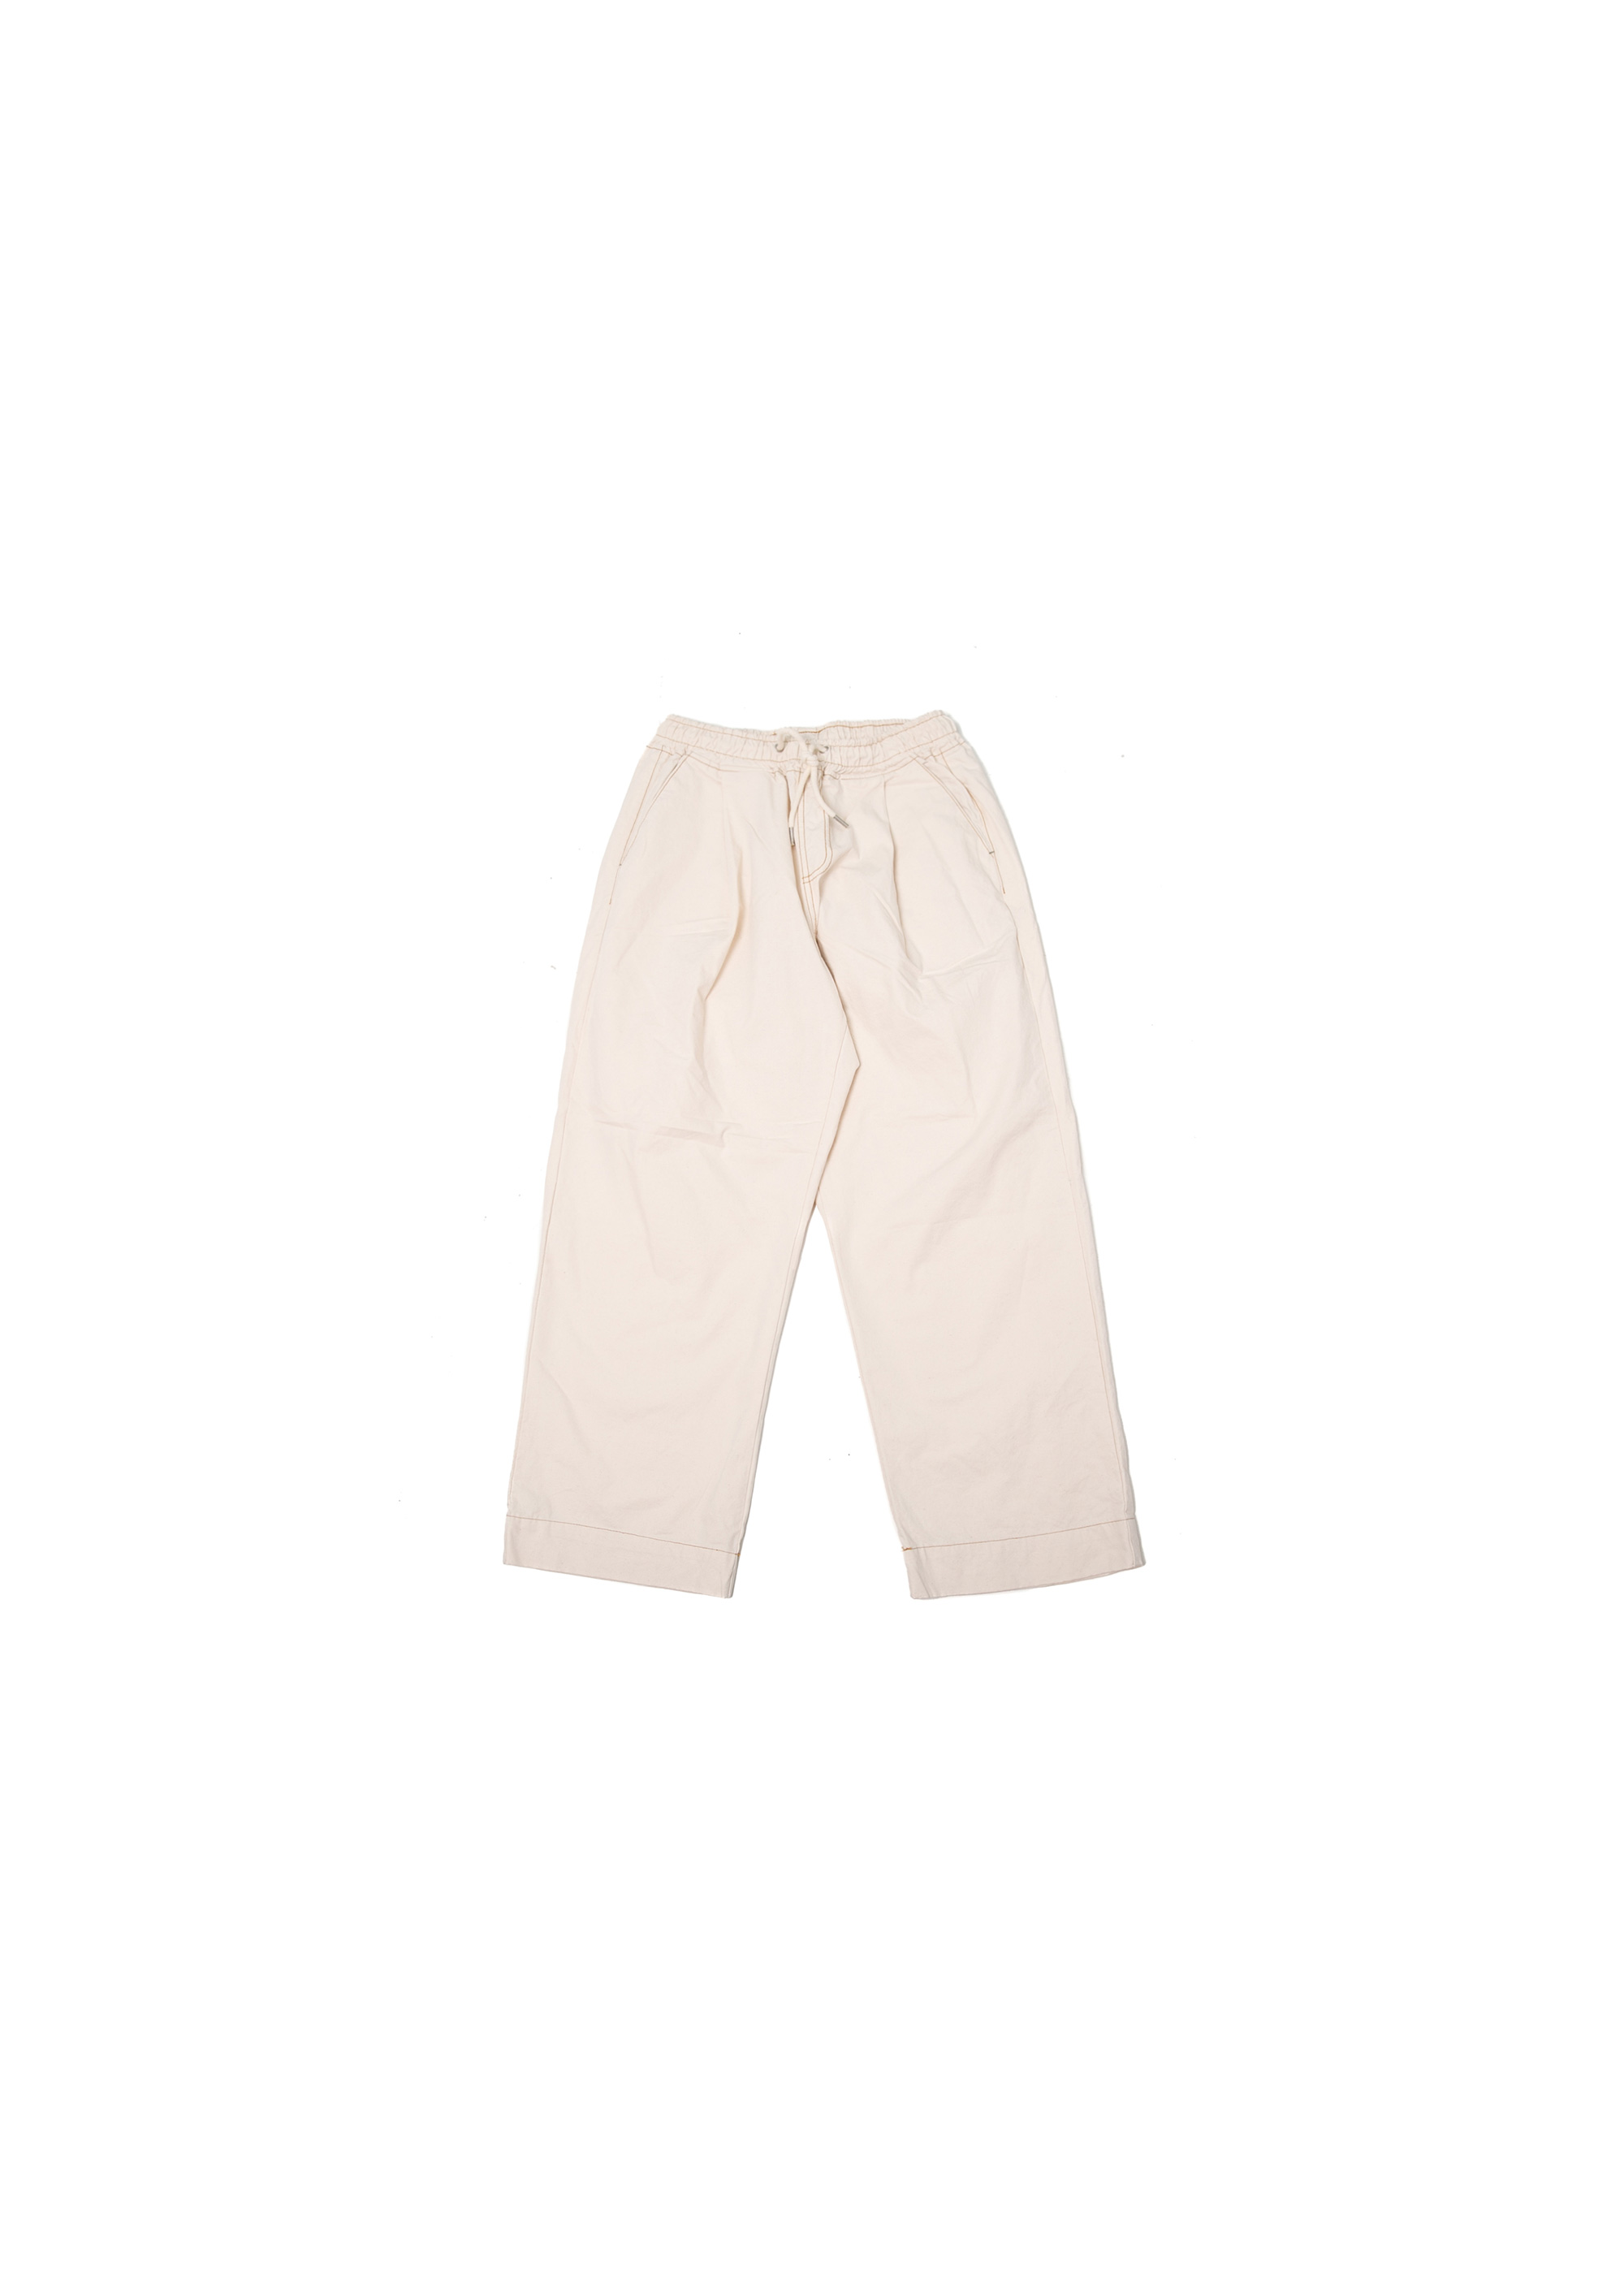 Big Pocket Work Pants - Ivory